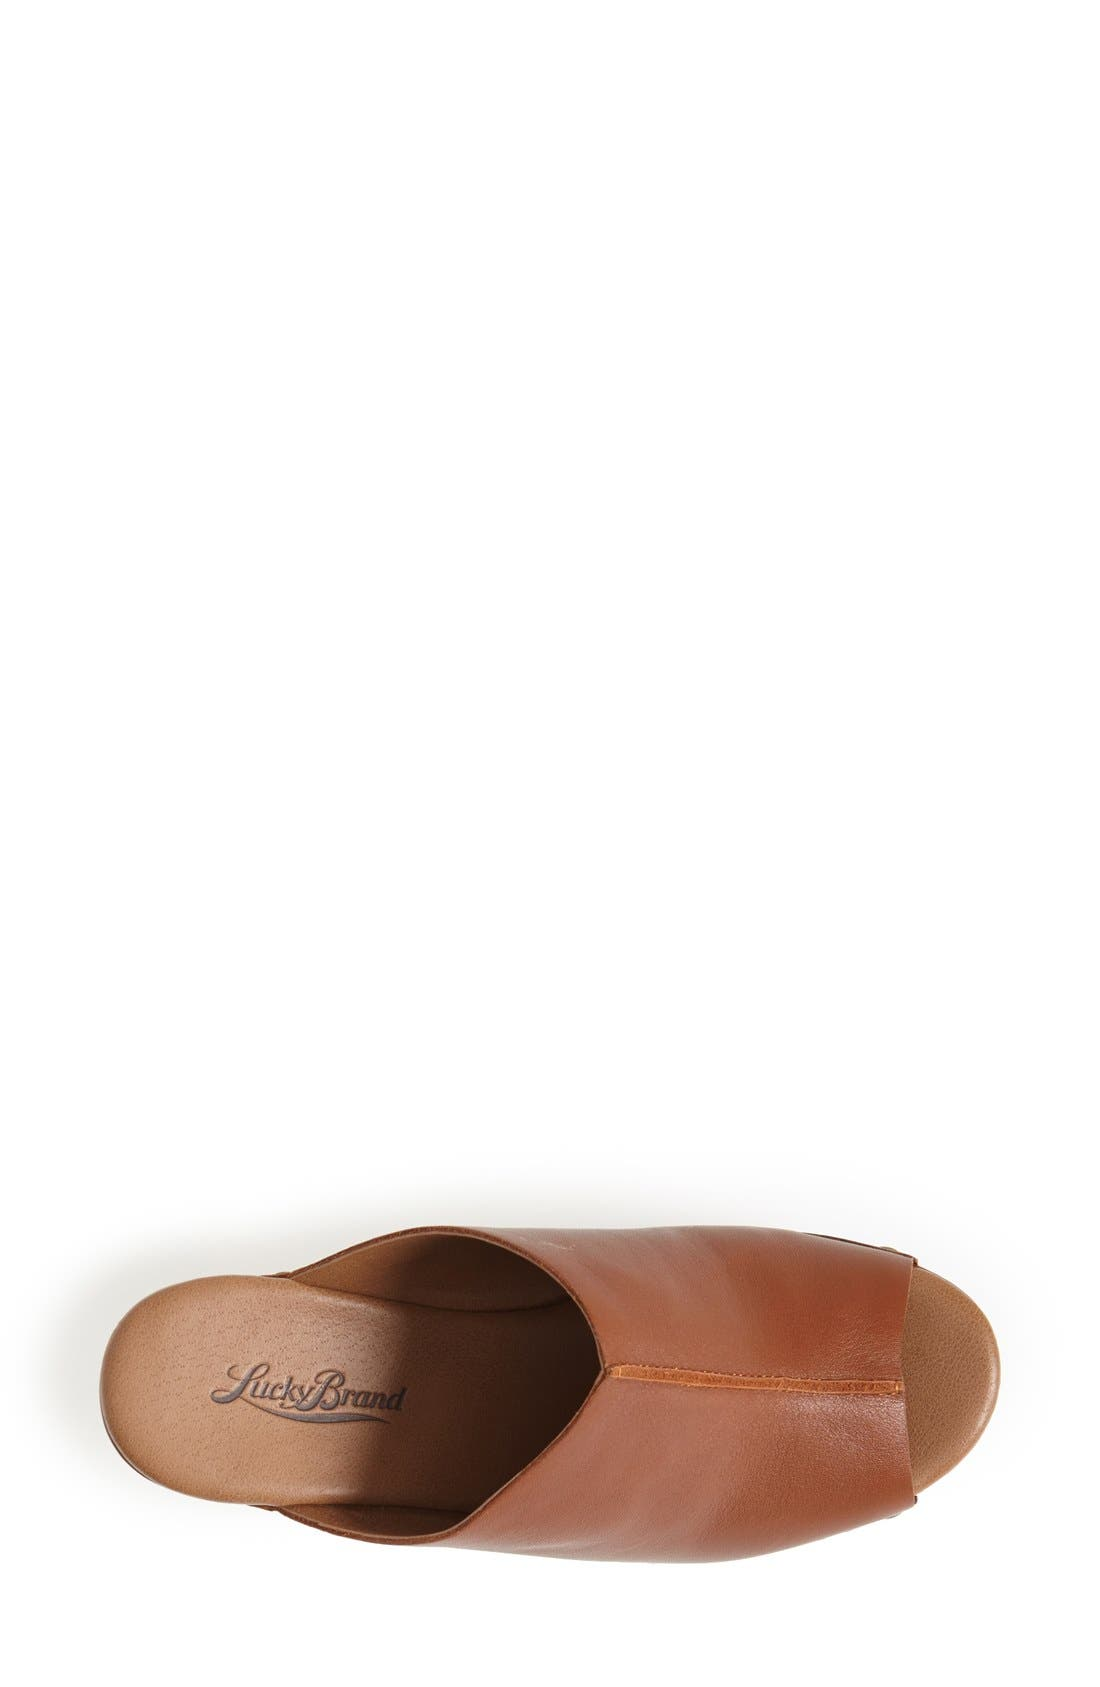 Alternate Image 3  - Lucky Brand 'Lucky Malayah' Leather Wedge Sandal (Women)